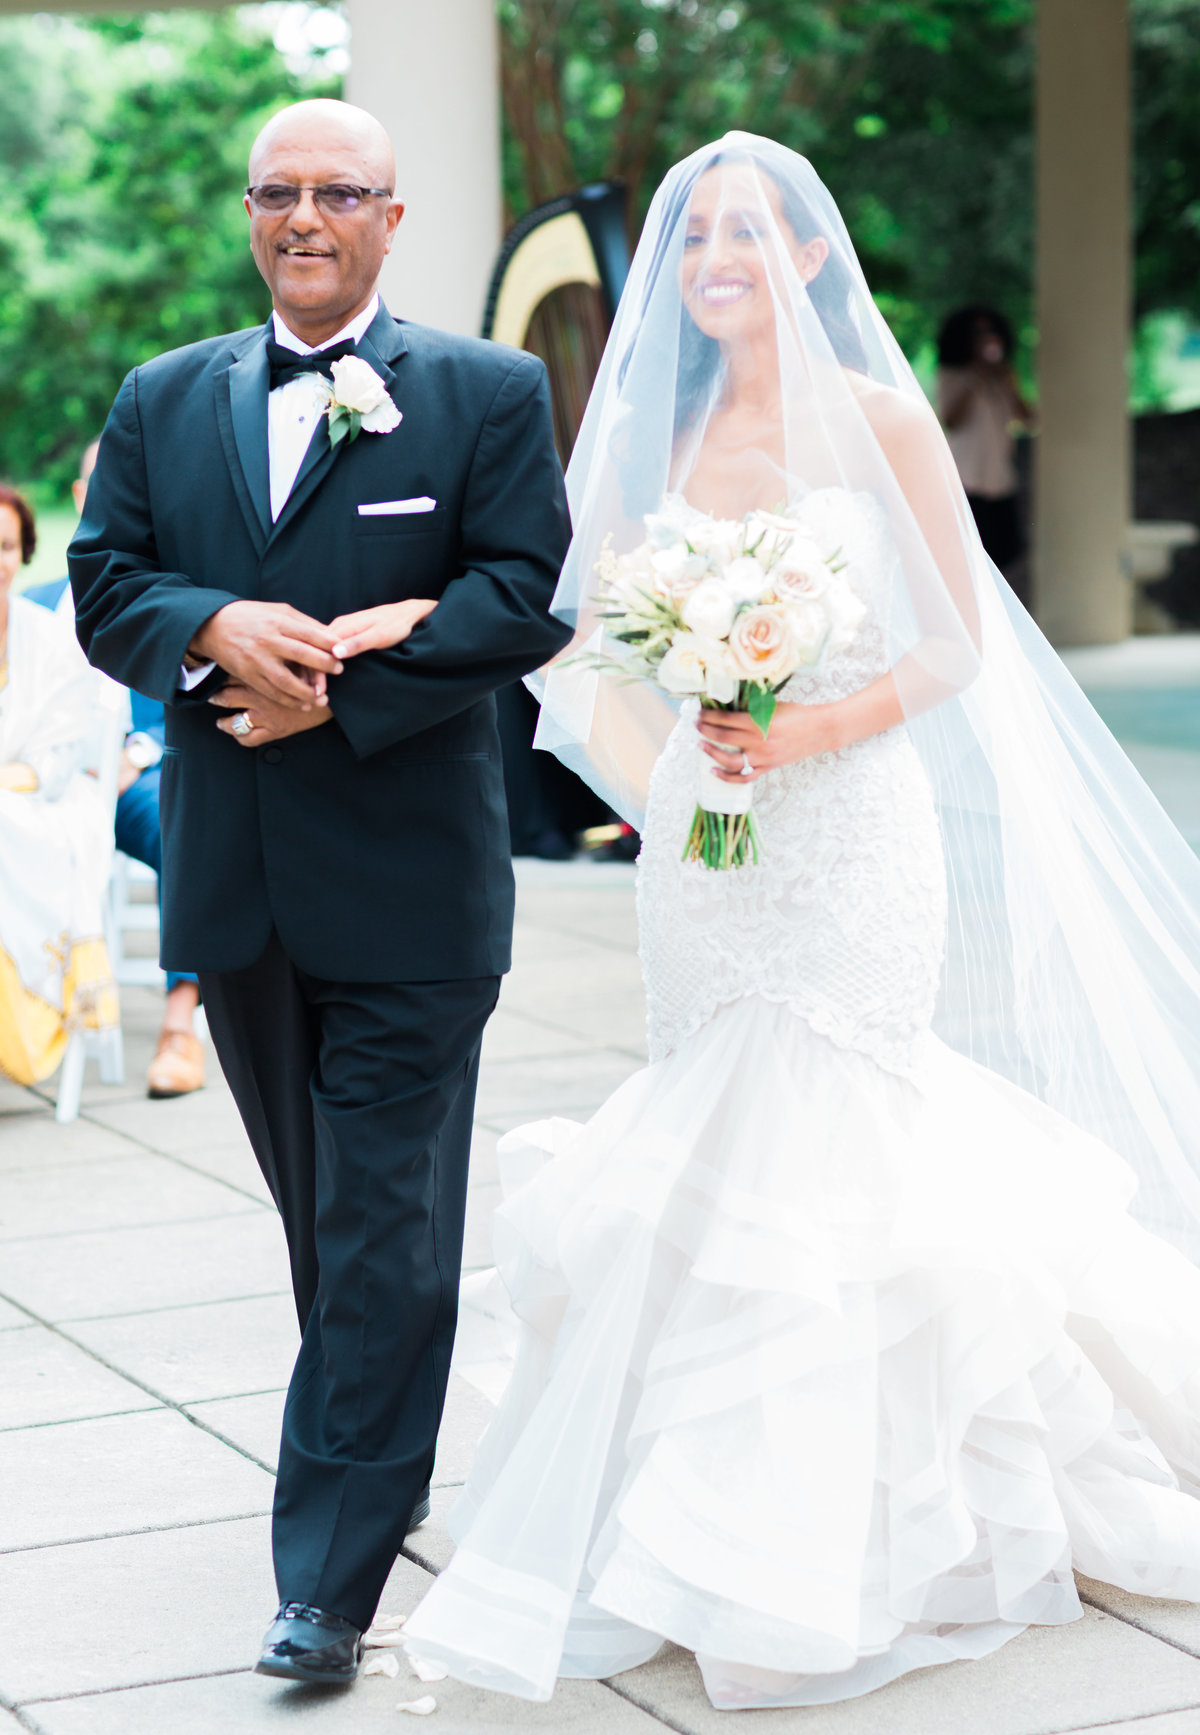 Bride + Father at Ceremony